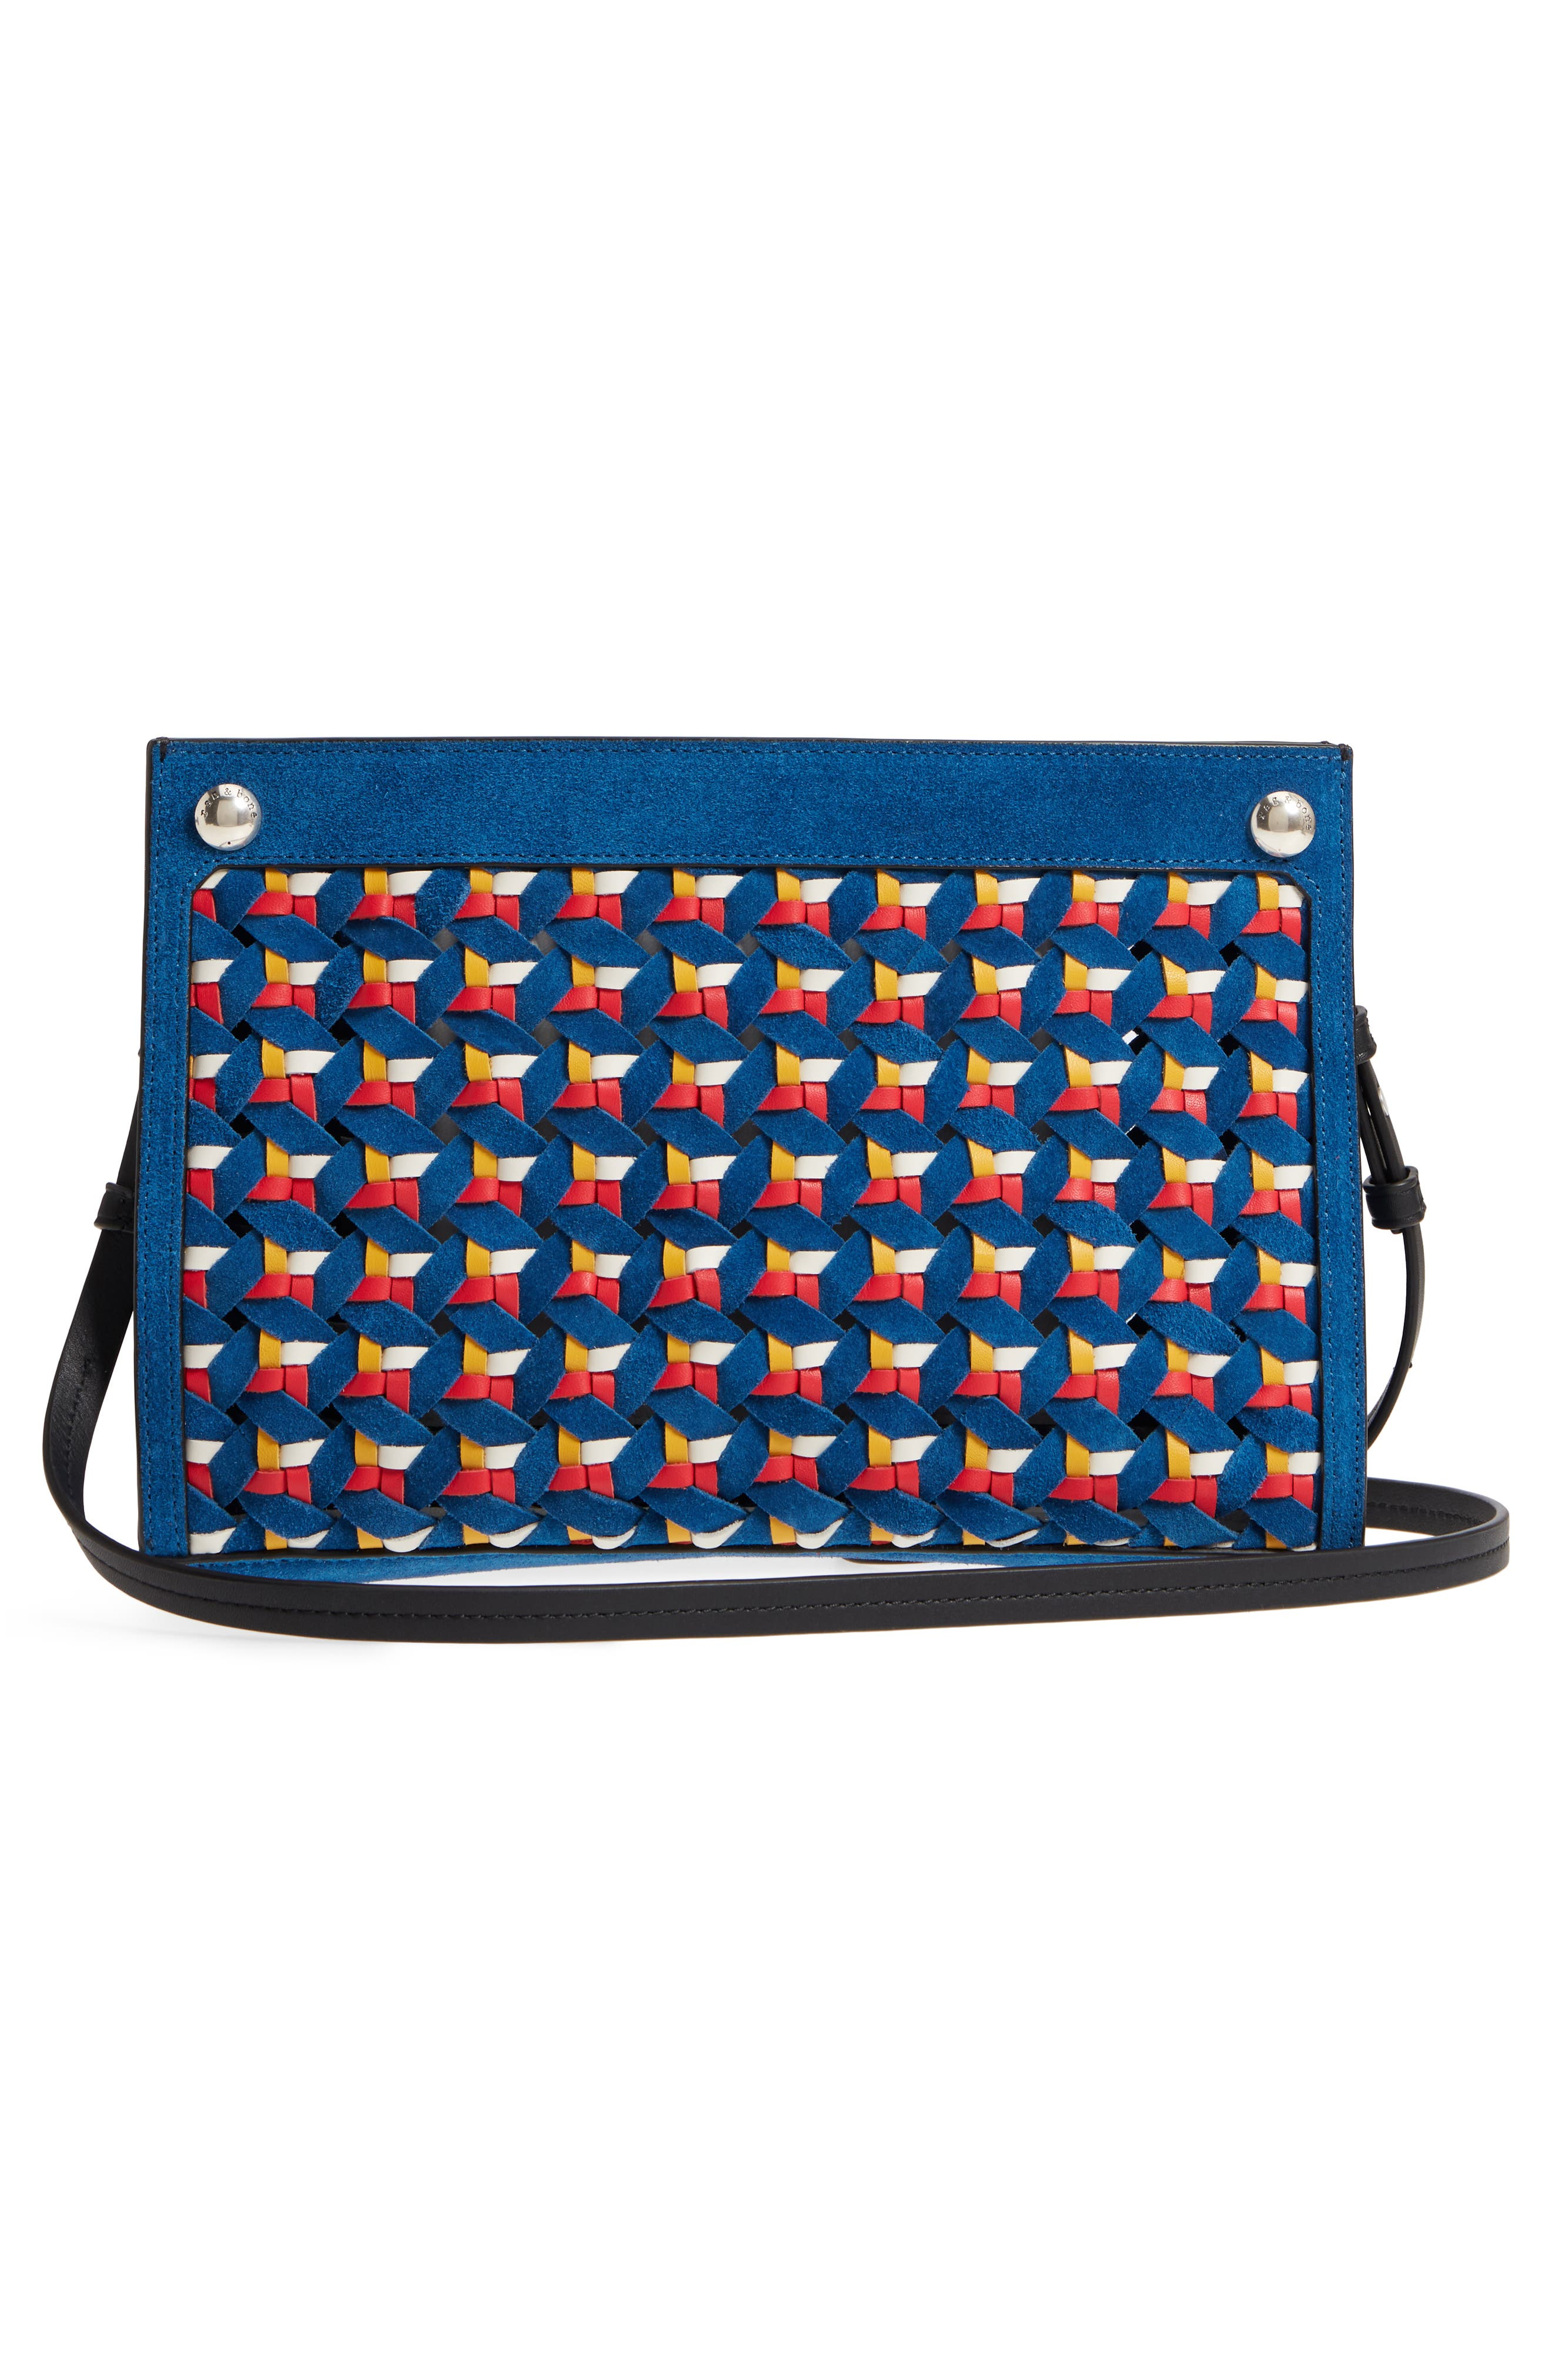 Compass Woven Suede & Leather Crossbody Bag,                             Alternate thumbnail 3, color,                             Multi Woven